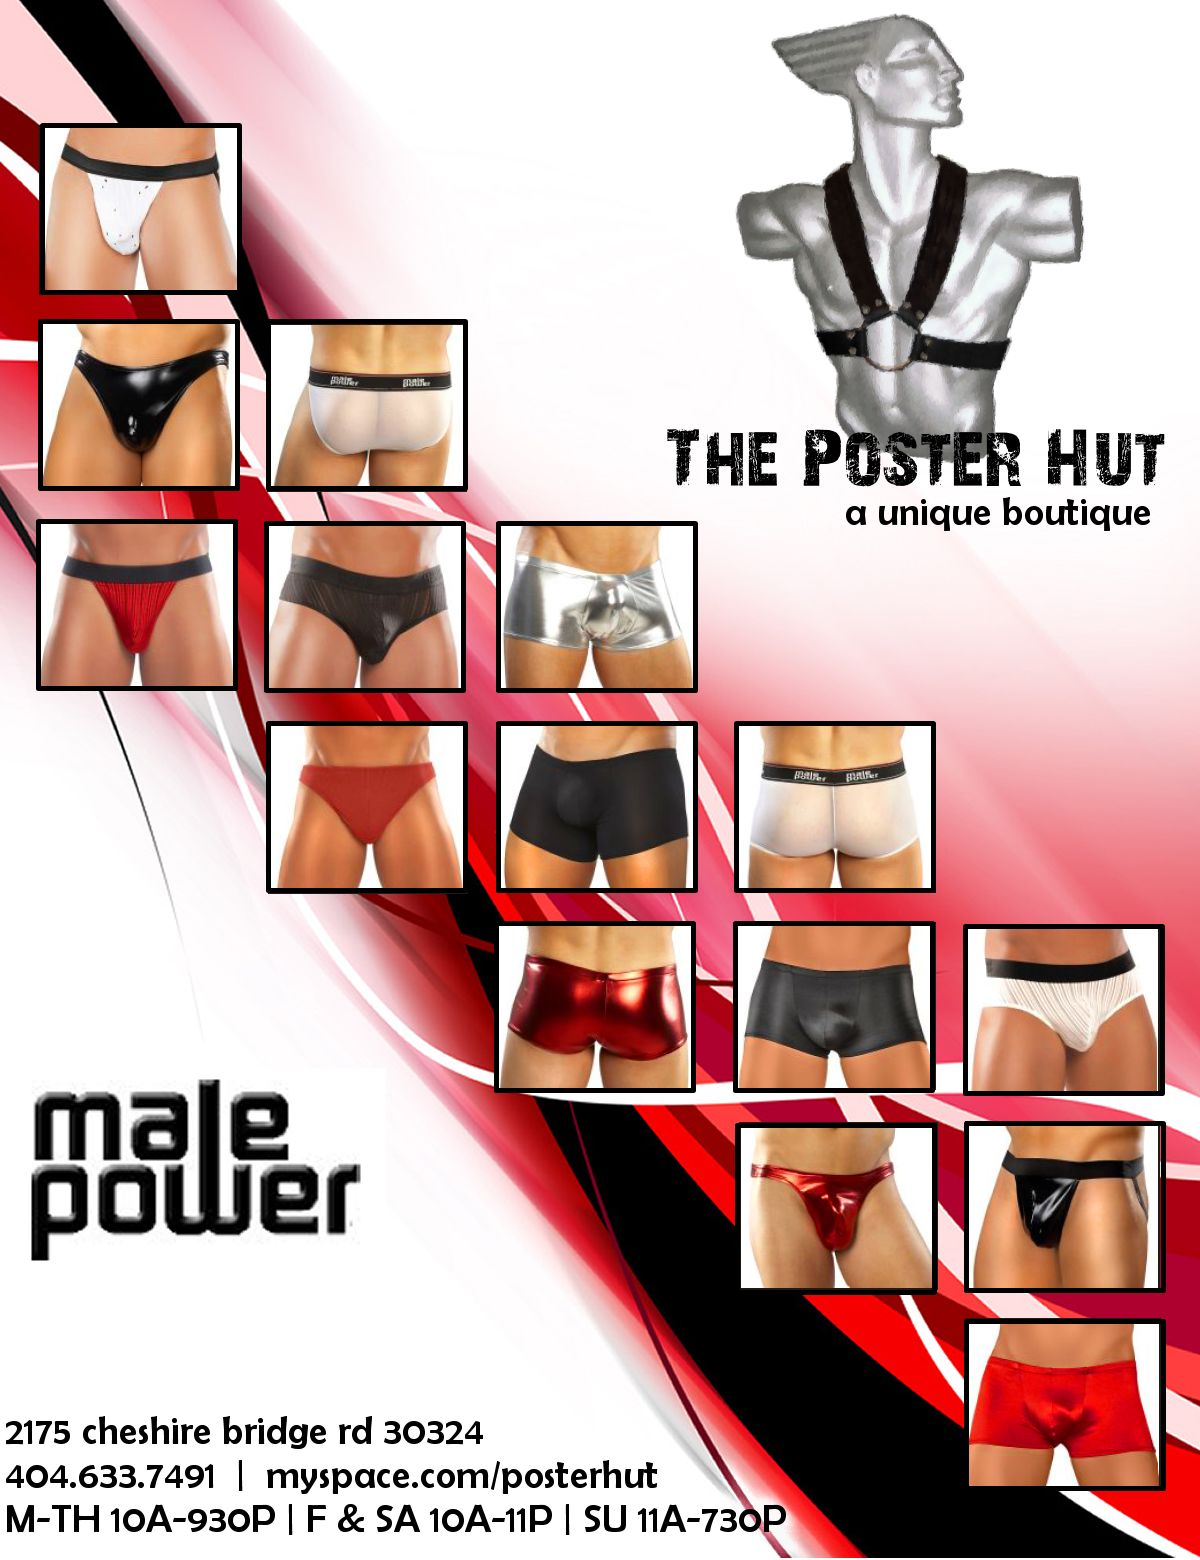 Poster Hut has New Male Power